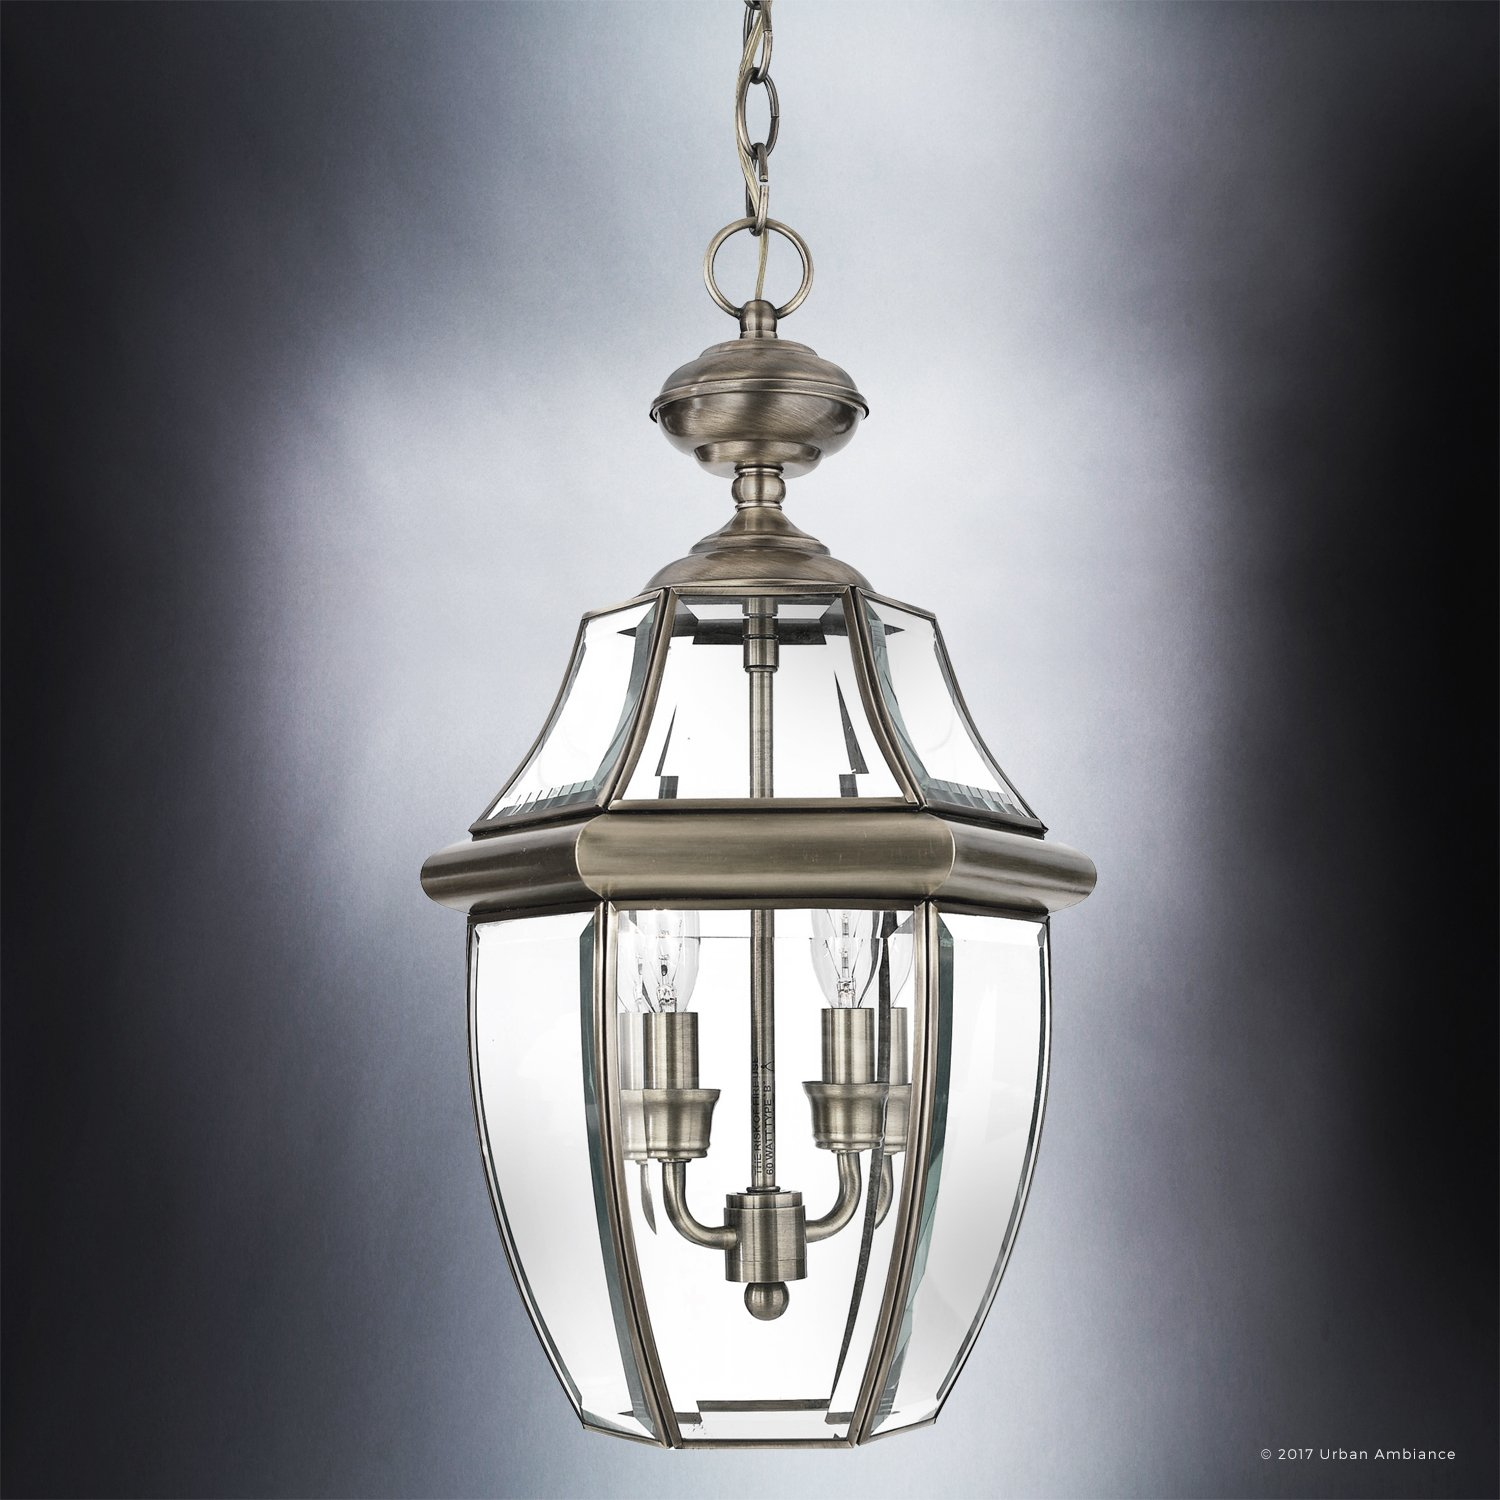 Luxury Colonial Outdoor Pendant Light, Large Size: 19''H x 11''W, with Tudor Style Elements, Versatile Design, Classy Aged Silver Finish and Beveled Glass, UQL1158 by Urban Ambiance by Urban Ambiance (Image #4)